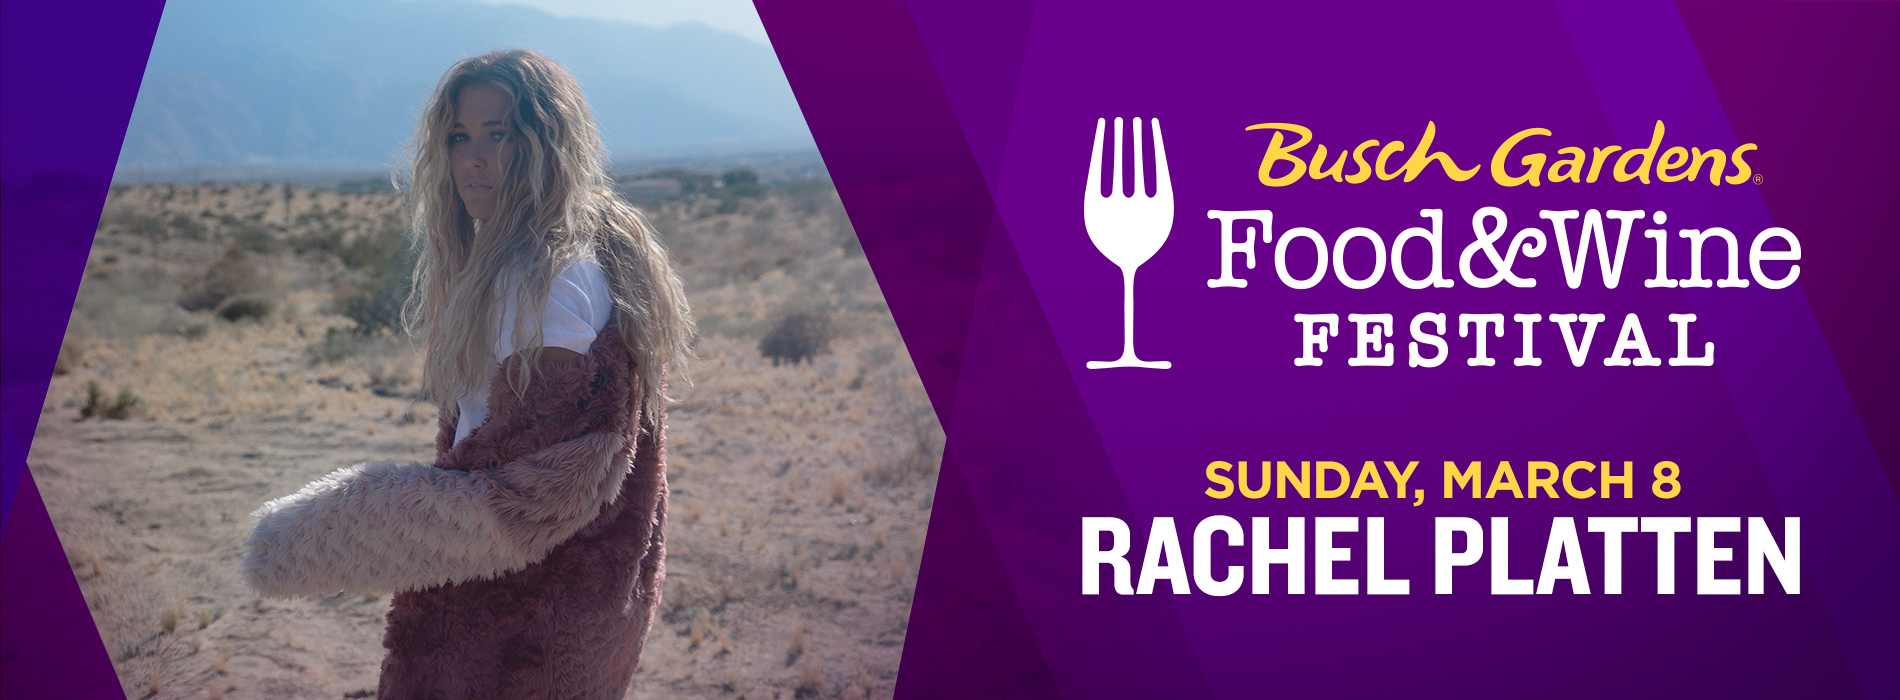 Rachel Platten at Busch Gardens Tampa Bay on Sunday, March 8 for the Food and Wine Festival